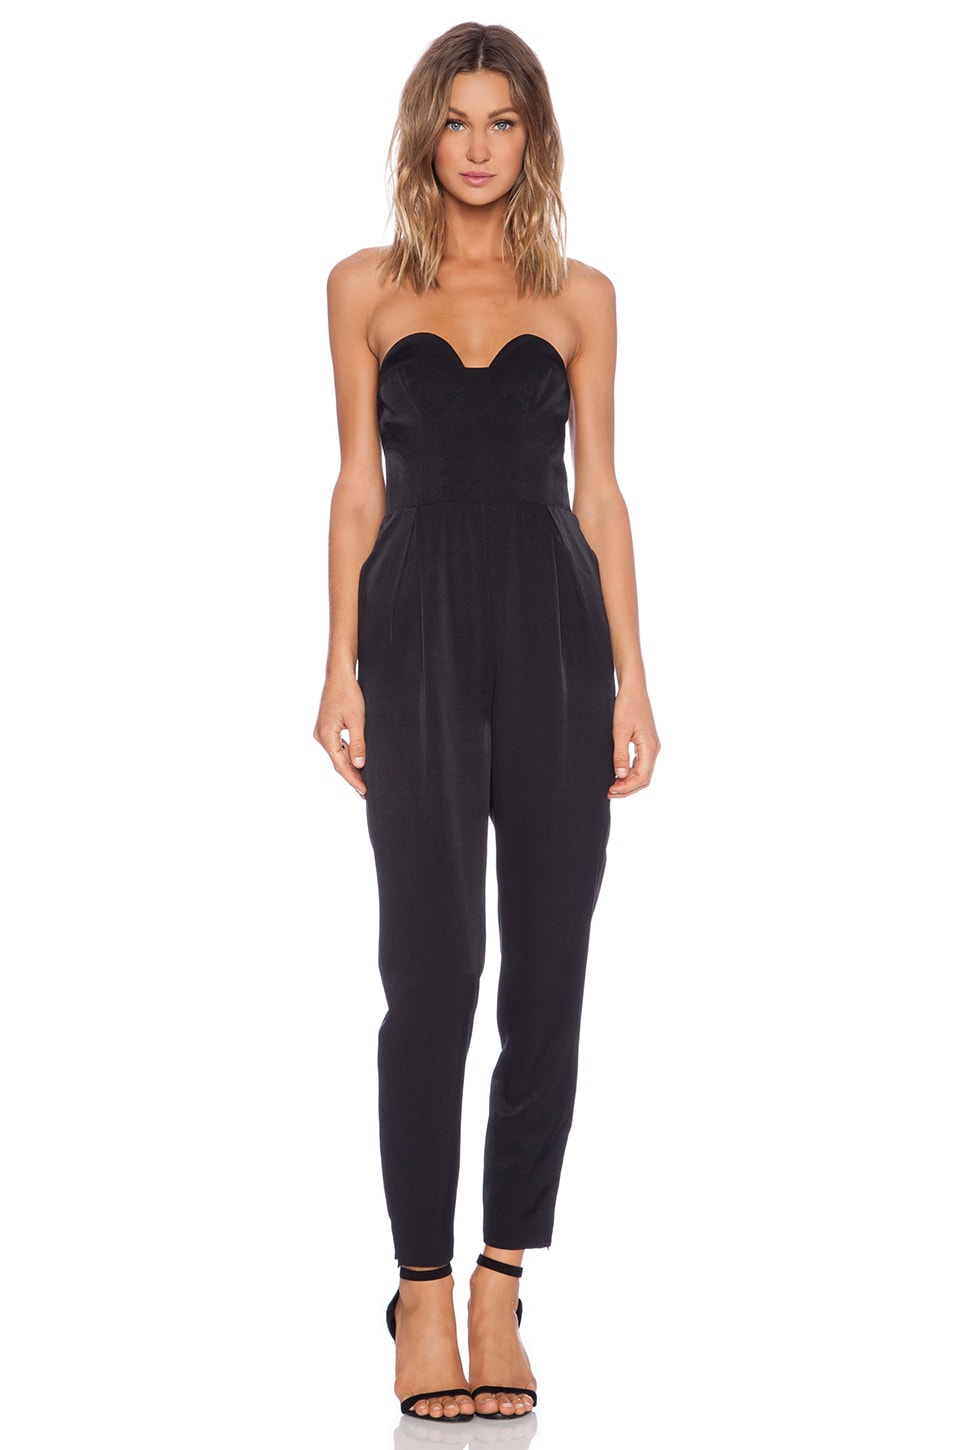 keepsake Hearts On Fire Pant Suit in Black